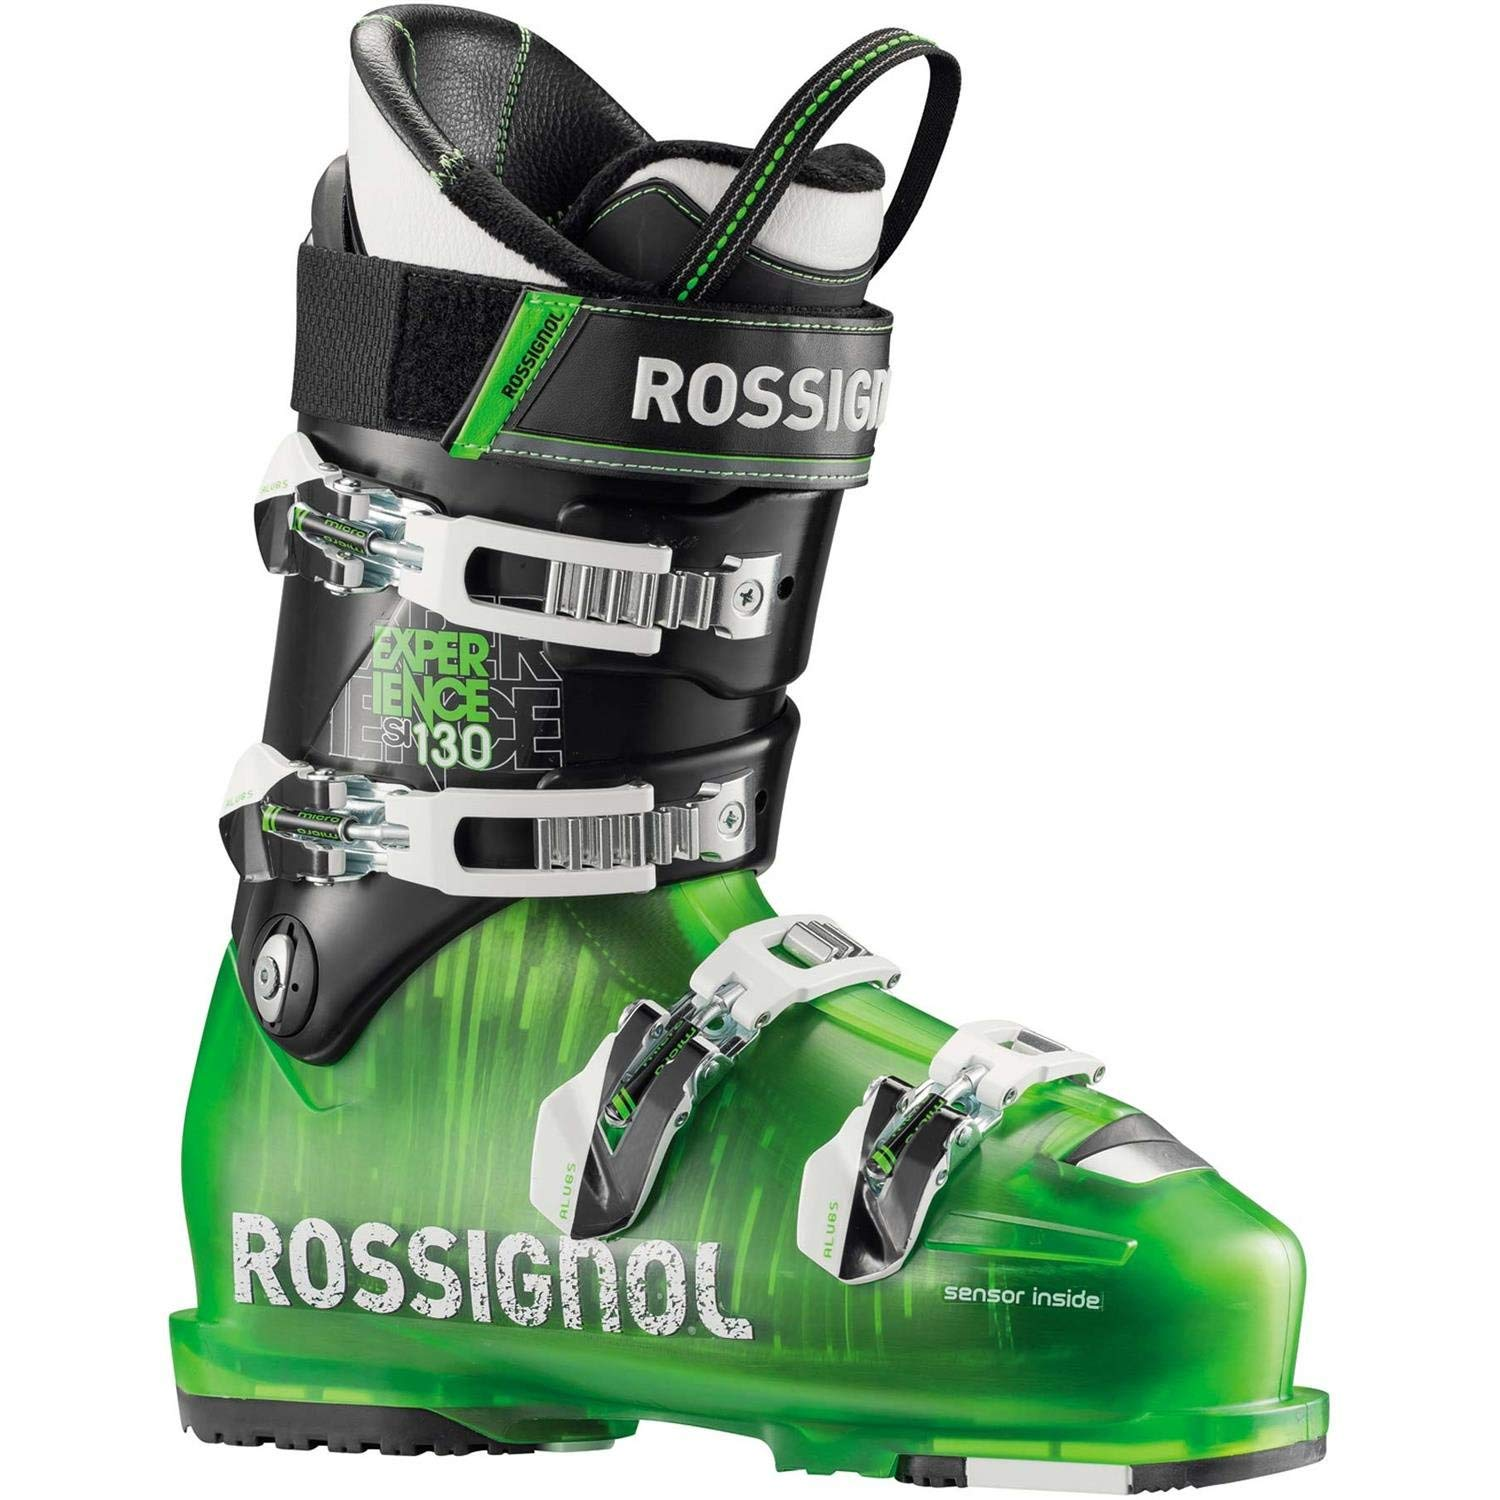 4e4275a4e5 Get Quotations · Rossignol Experience SI 130 Ski Boots 26.5